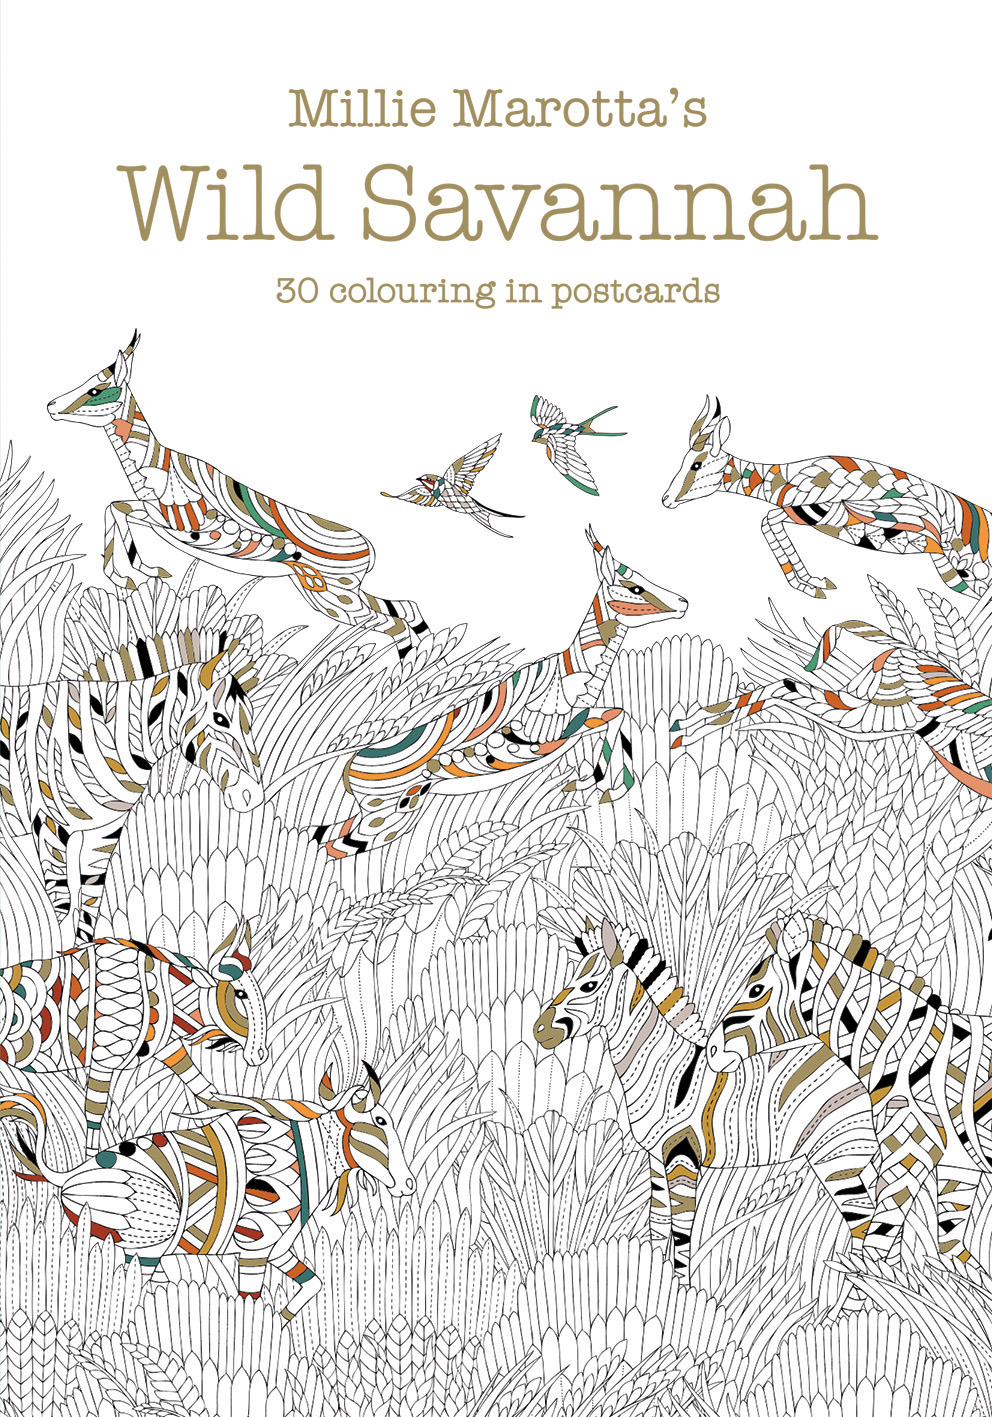 Millie Marotta's Wild Savannah Postcard Book